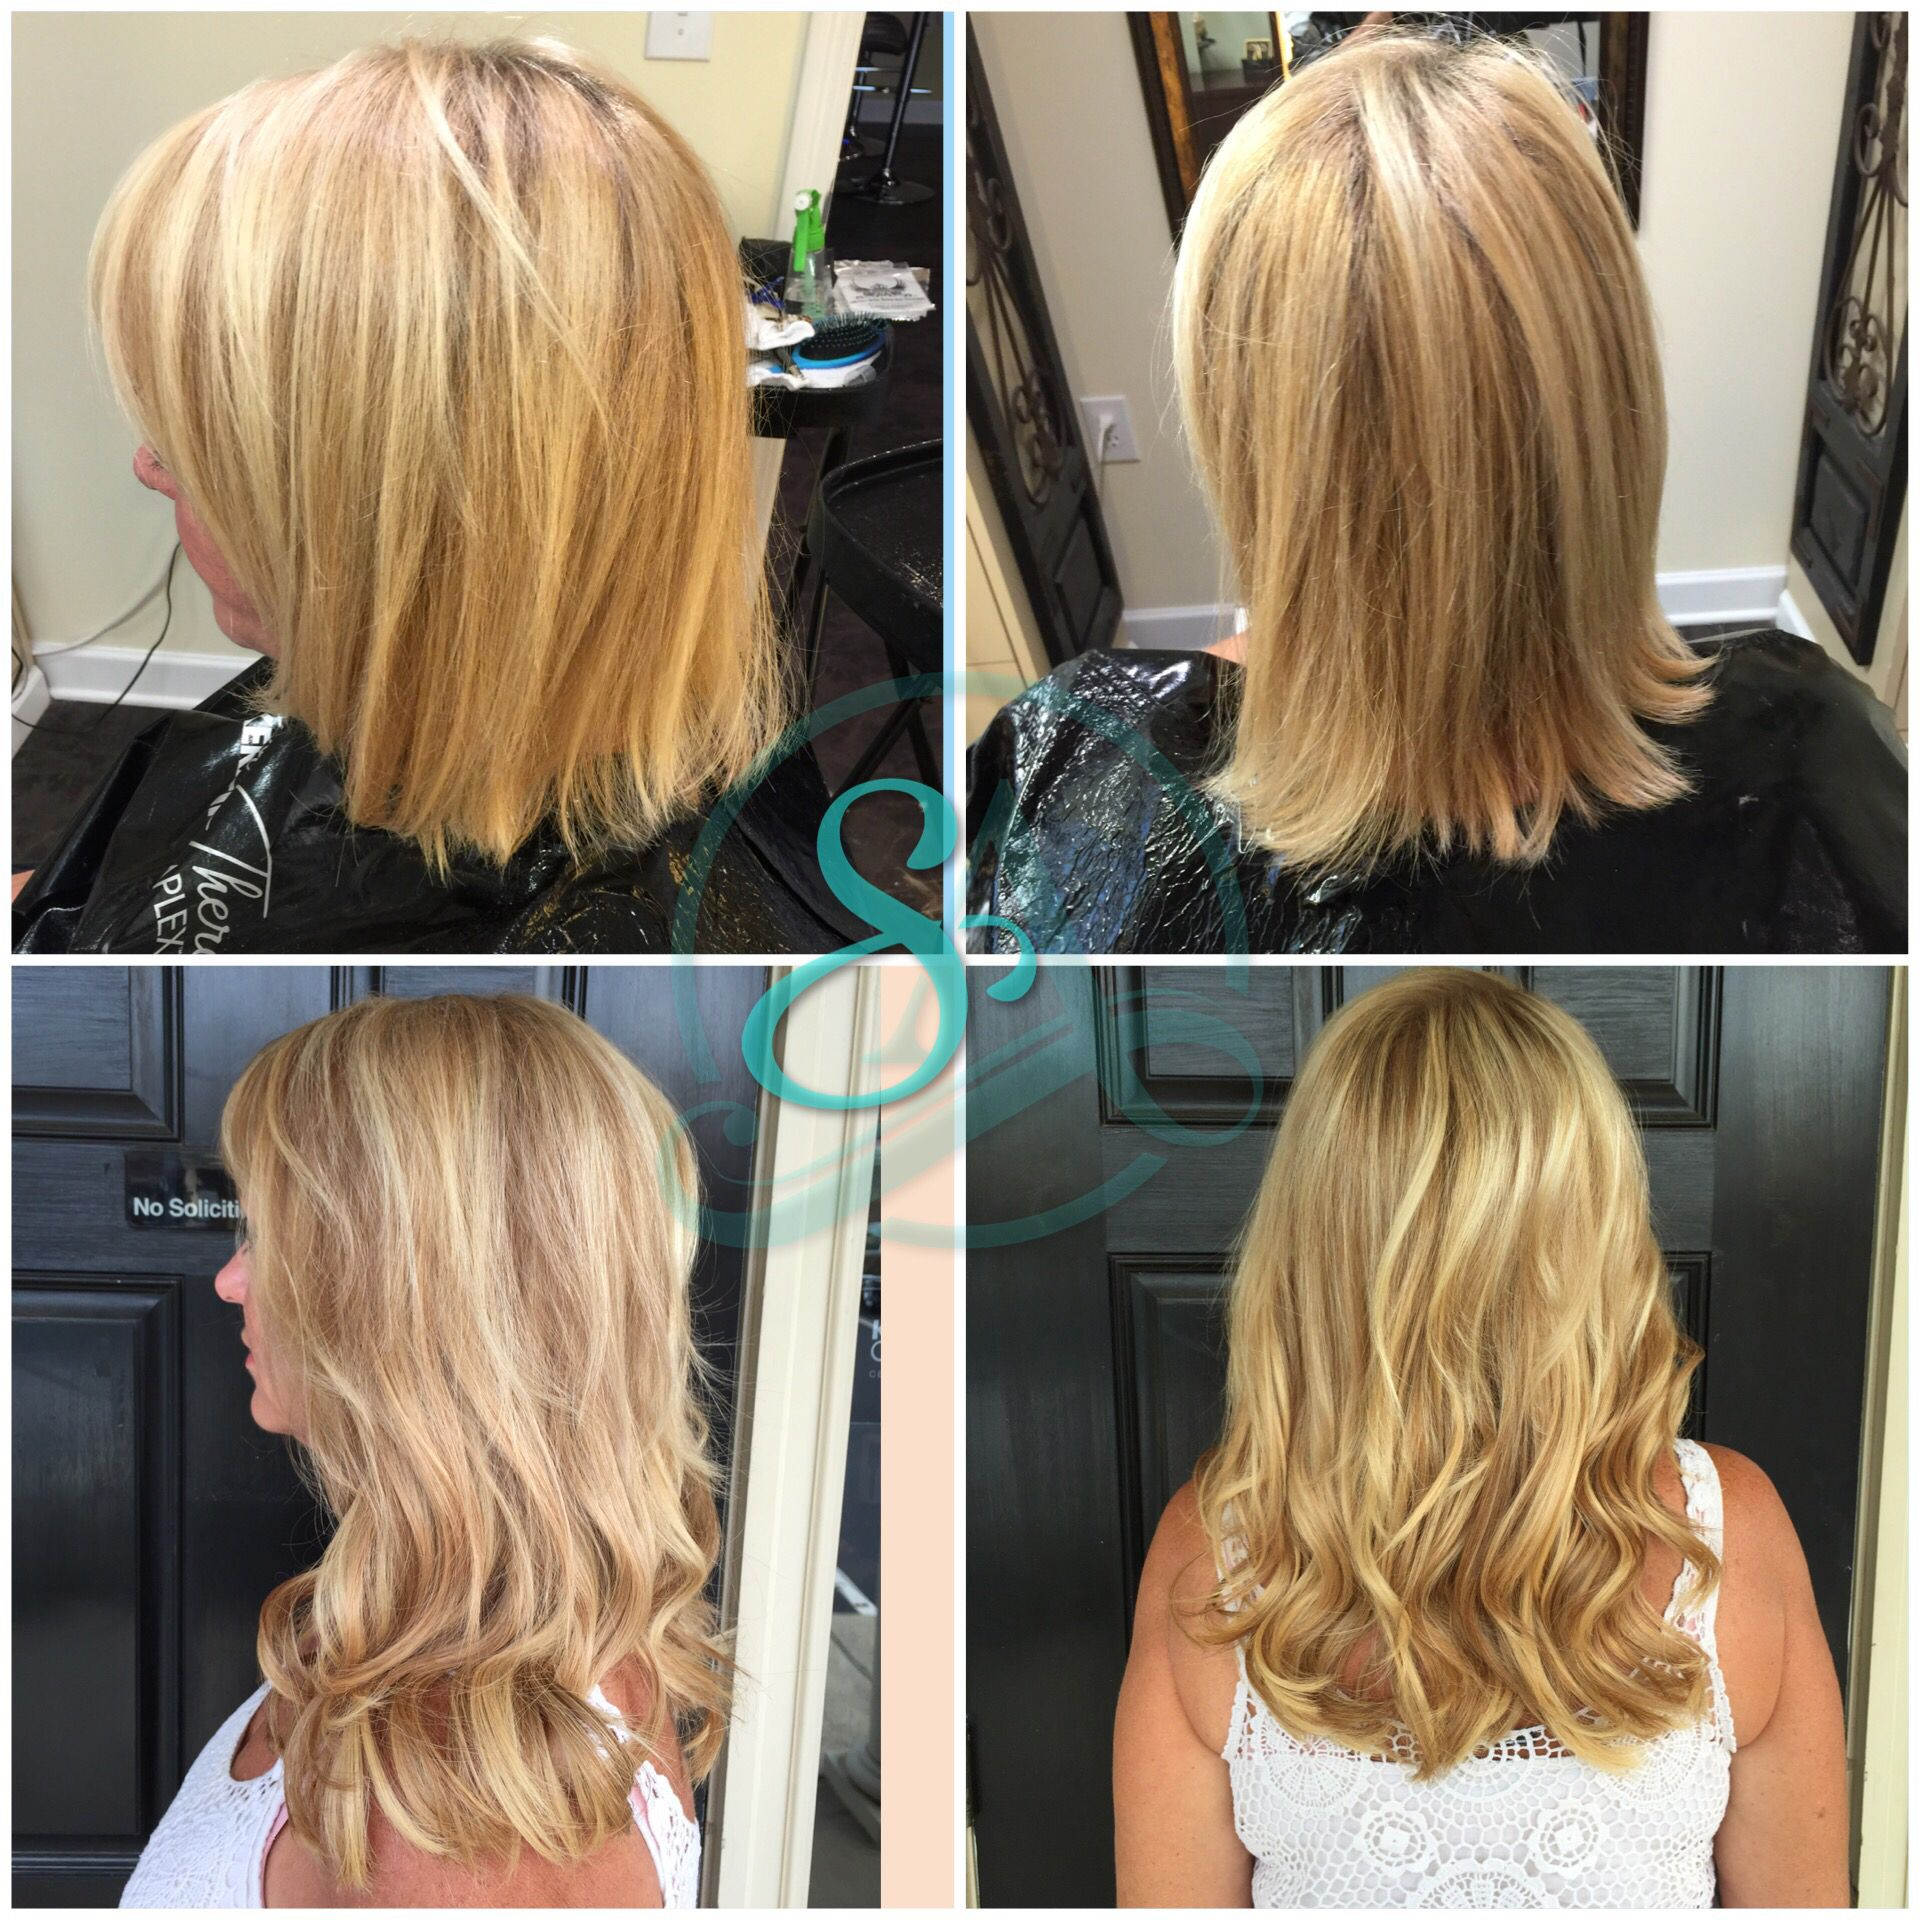 fusion extensions for fullness and length. blonde hair extensions